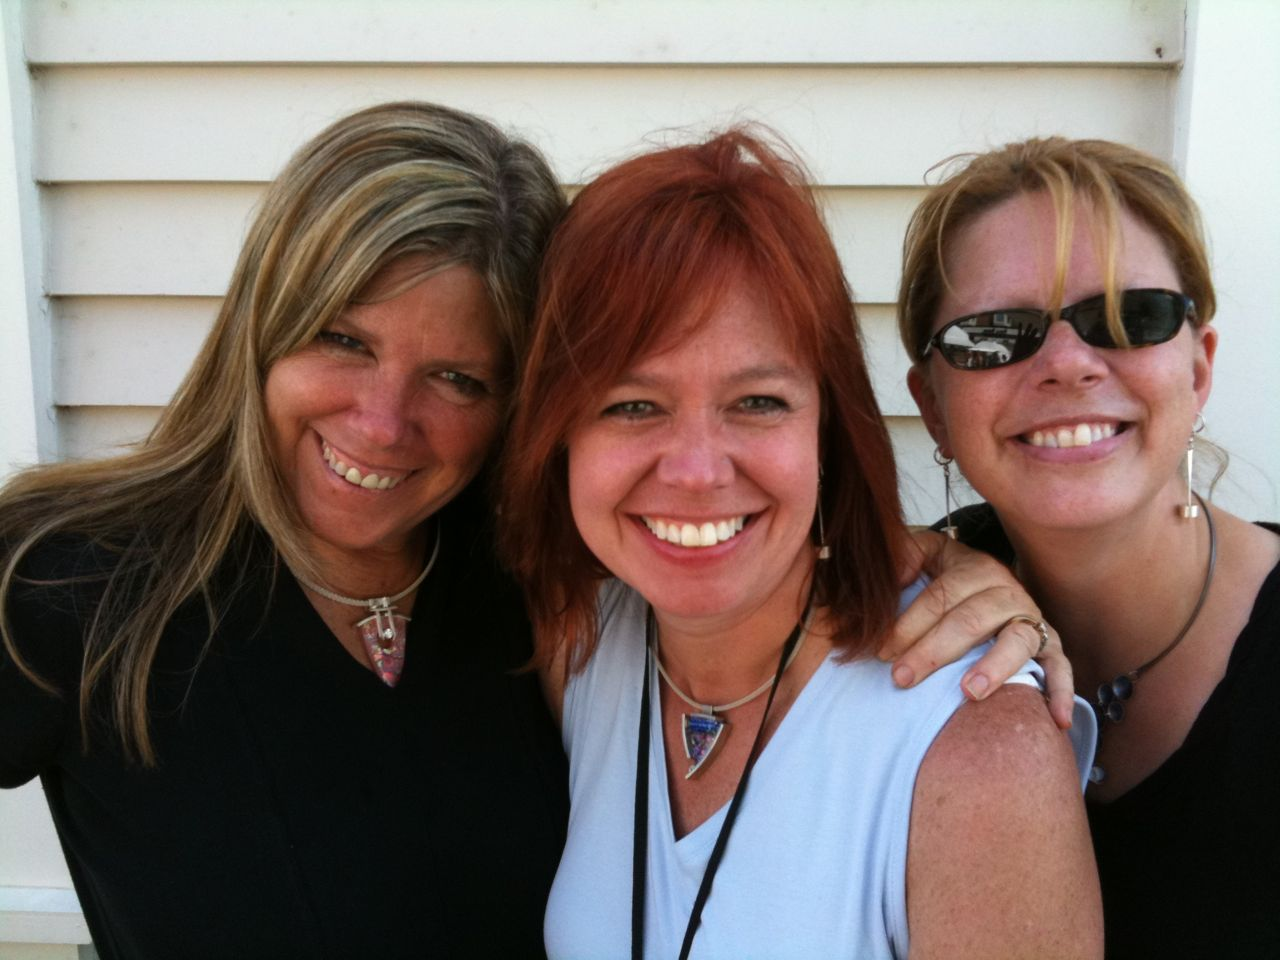 Anita, Karyn and Wendy show off VetroCaldo jewelry